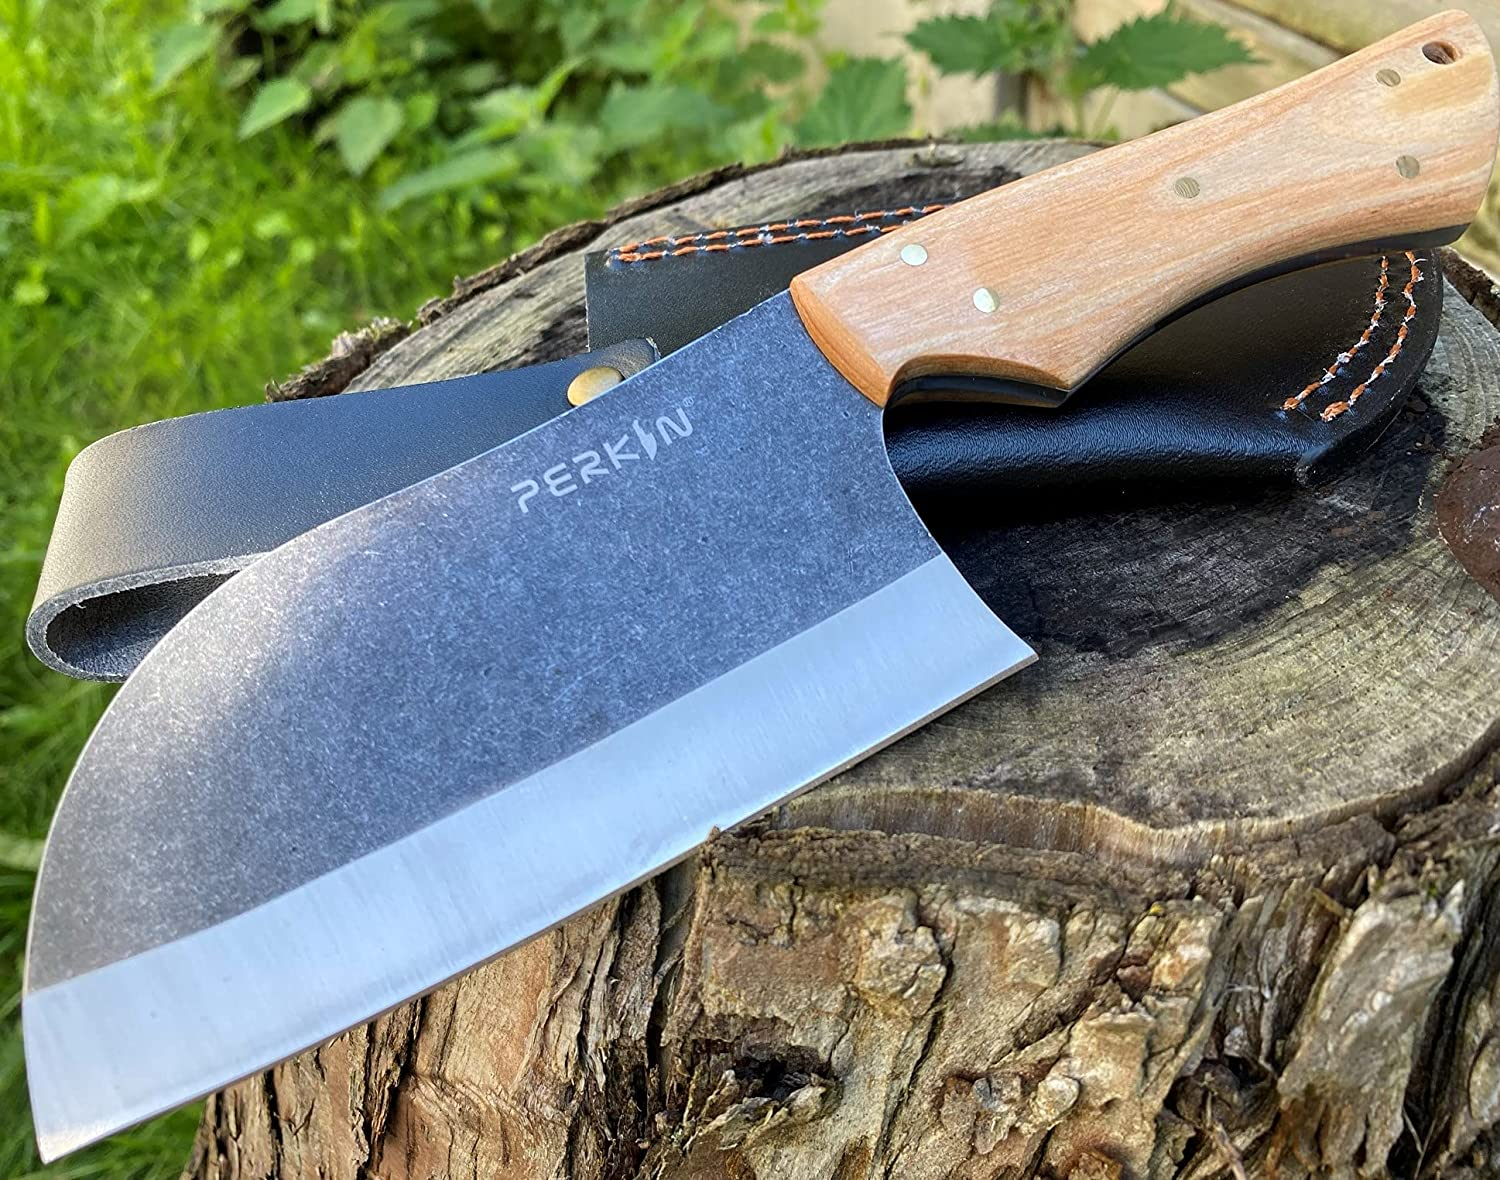 Perkin Hunting Sale special price Knife With Sheath 1095 Steel Super Special SALE held Cleaver PK2500